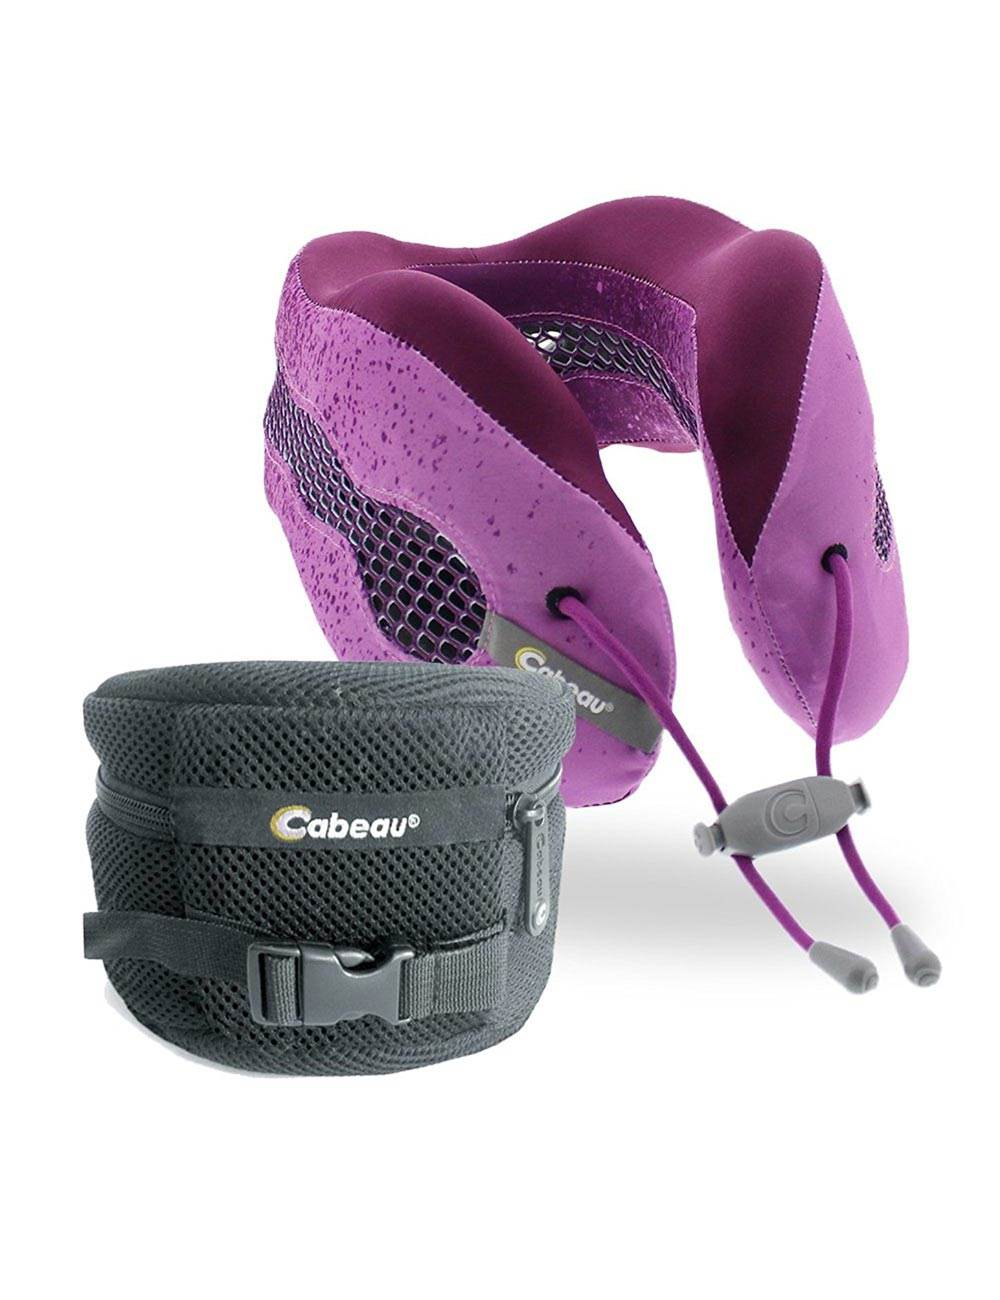 Evolution Cool Memory Foam Travel Pillow With Earplugs Cabeau By Cabeau Evolution Cool